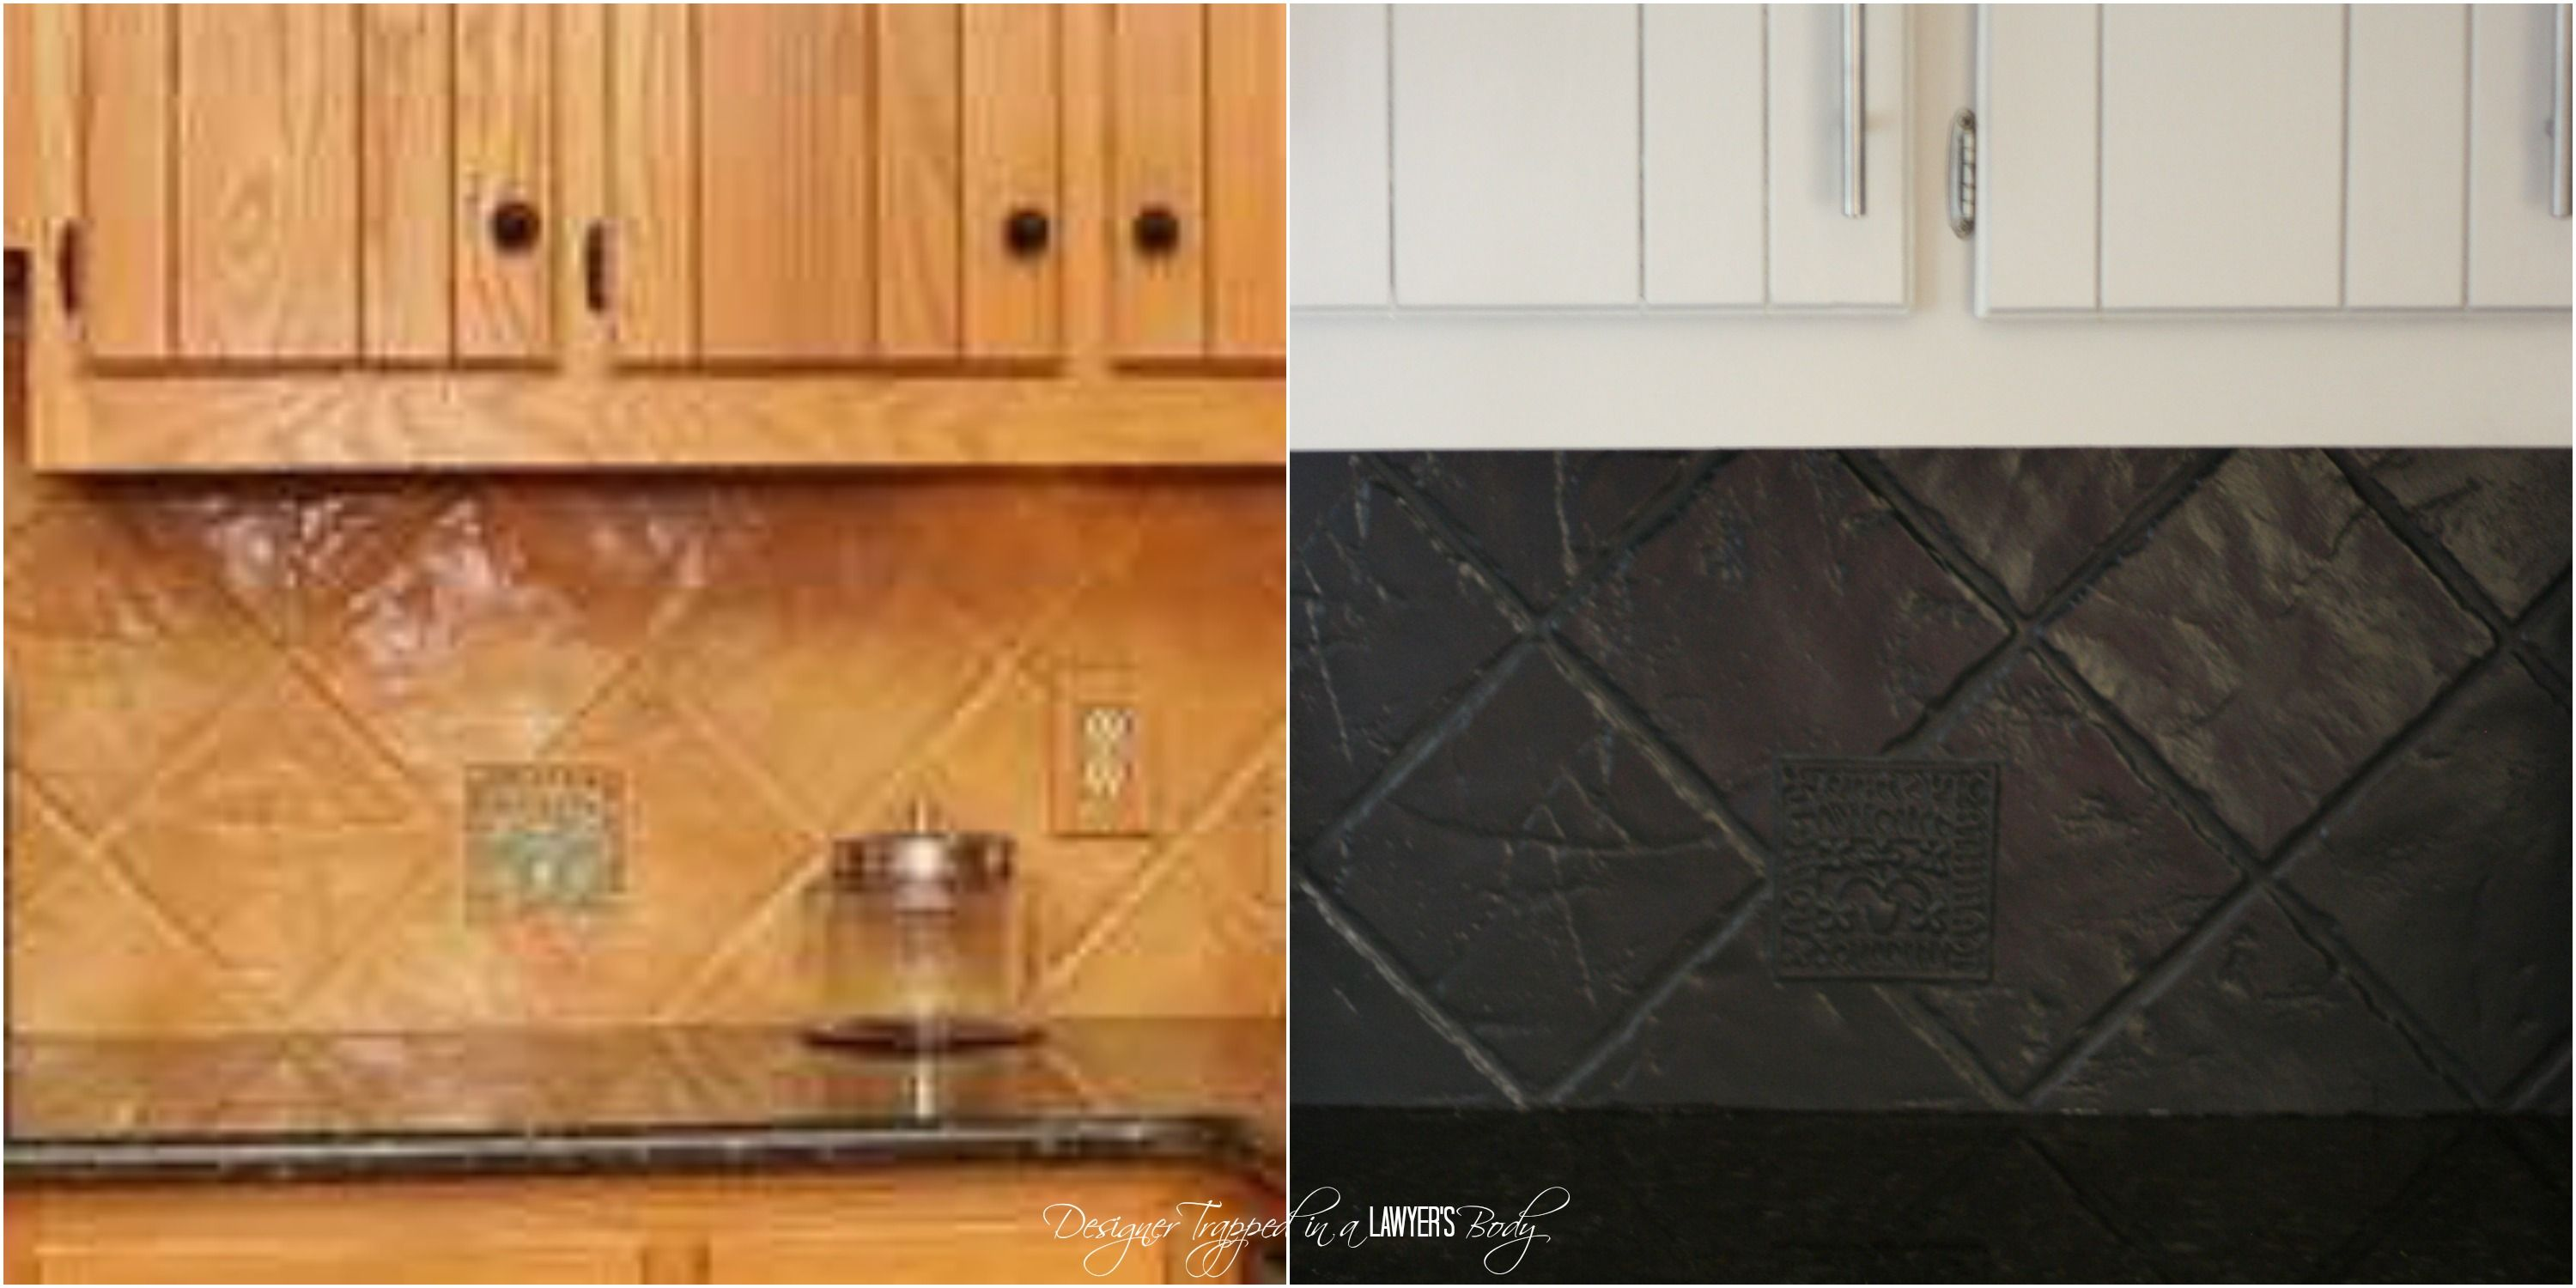 How to paint a tile backsplash my budget solution kitchens you can paint your tile backsplash talk about a thrifty update full tutorial by designer trapped in a lawyers body dailygadgetfo Image collections